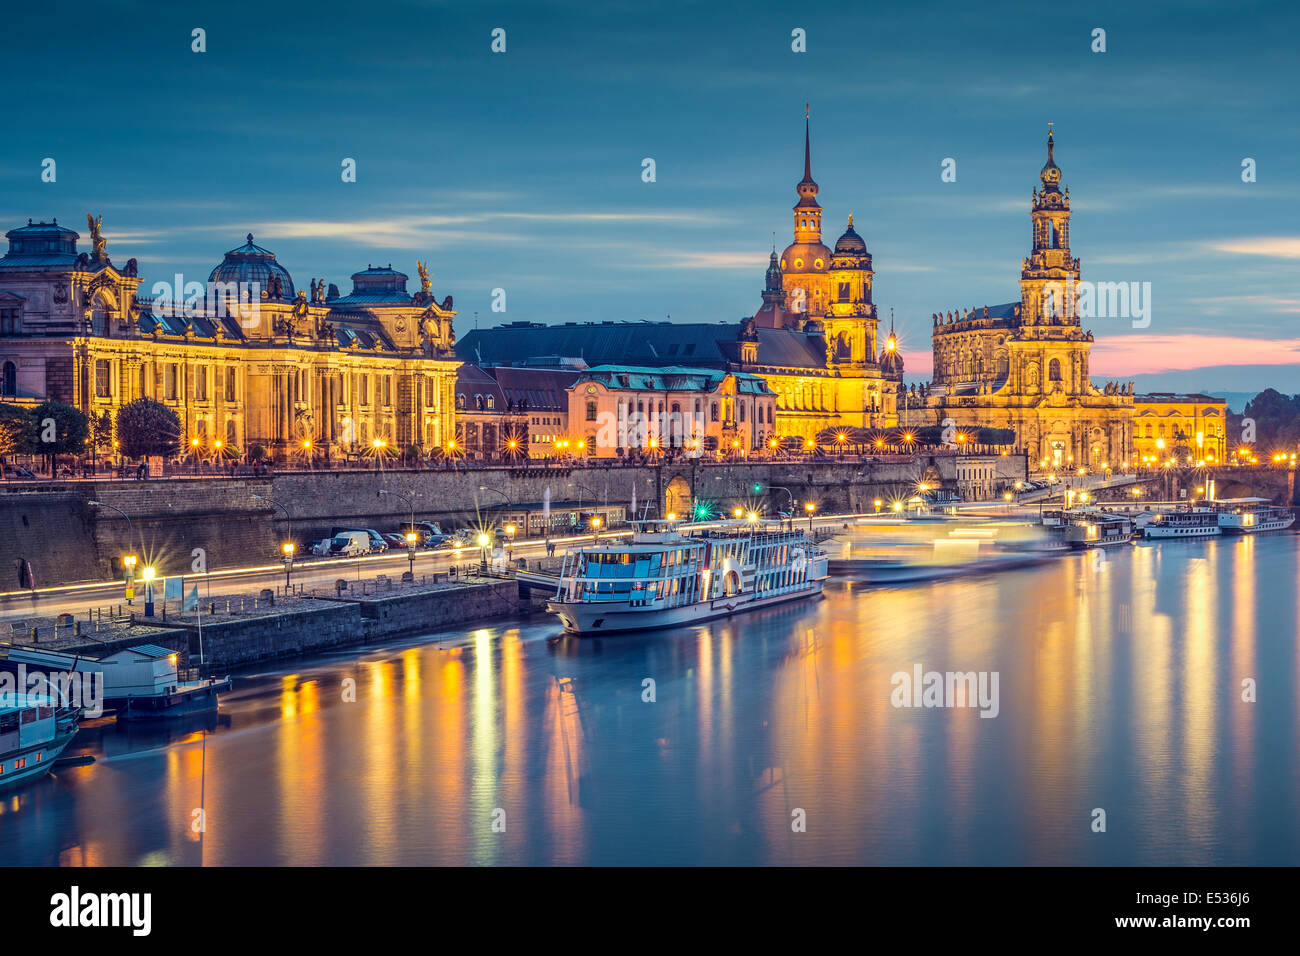 Dresden, Germany cityscape on the Elbe River. - Stock Image